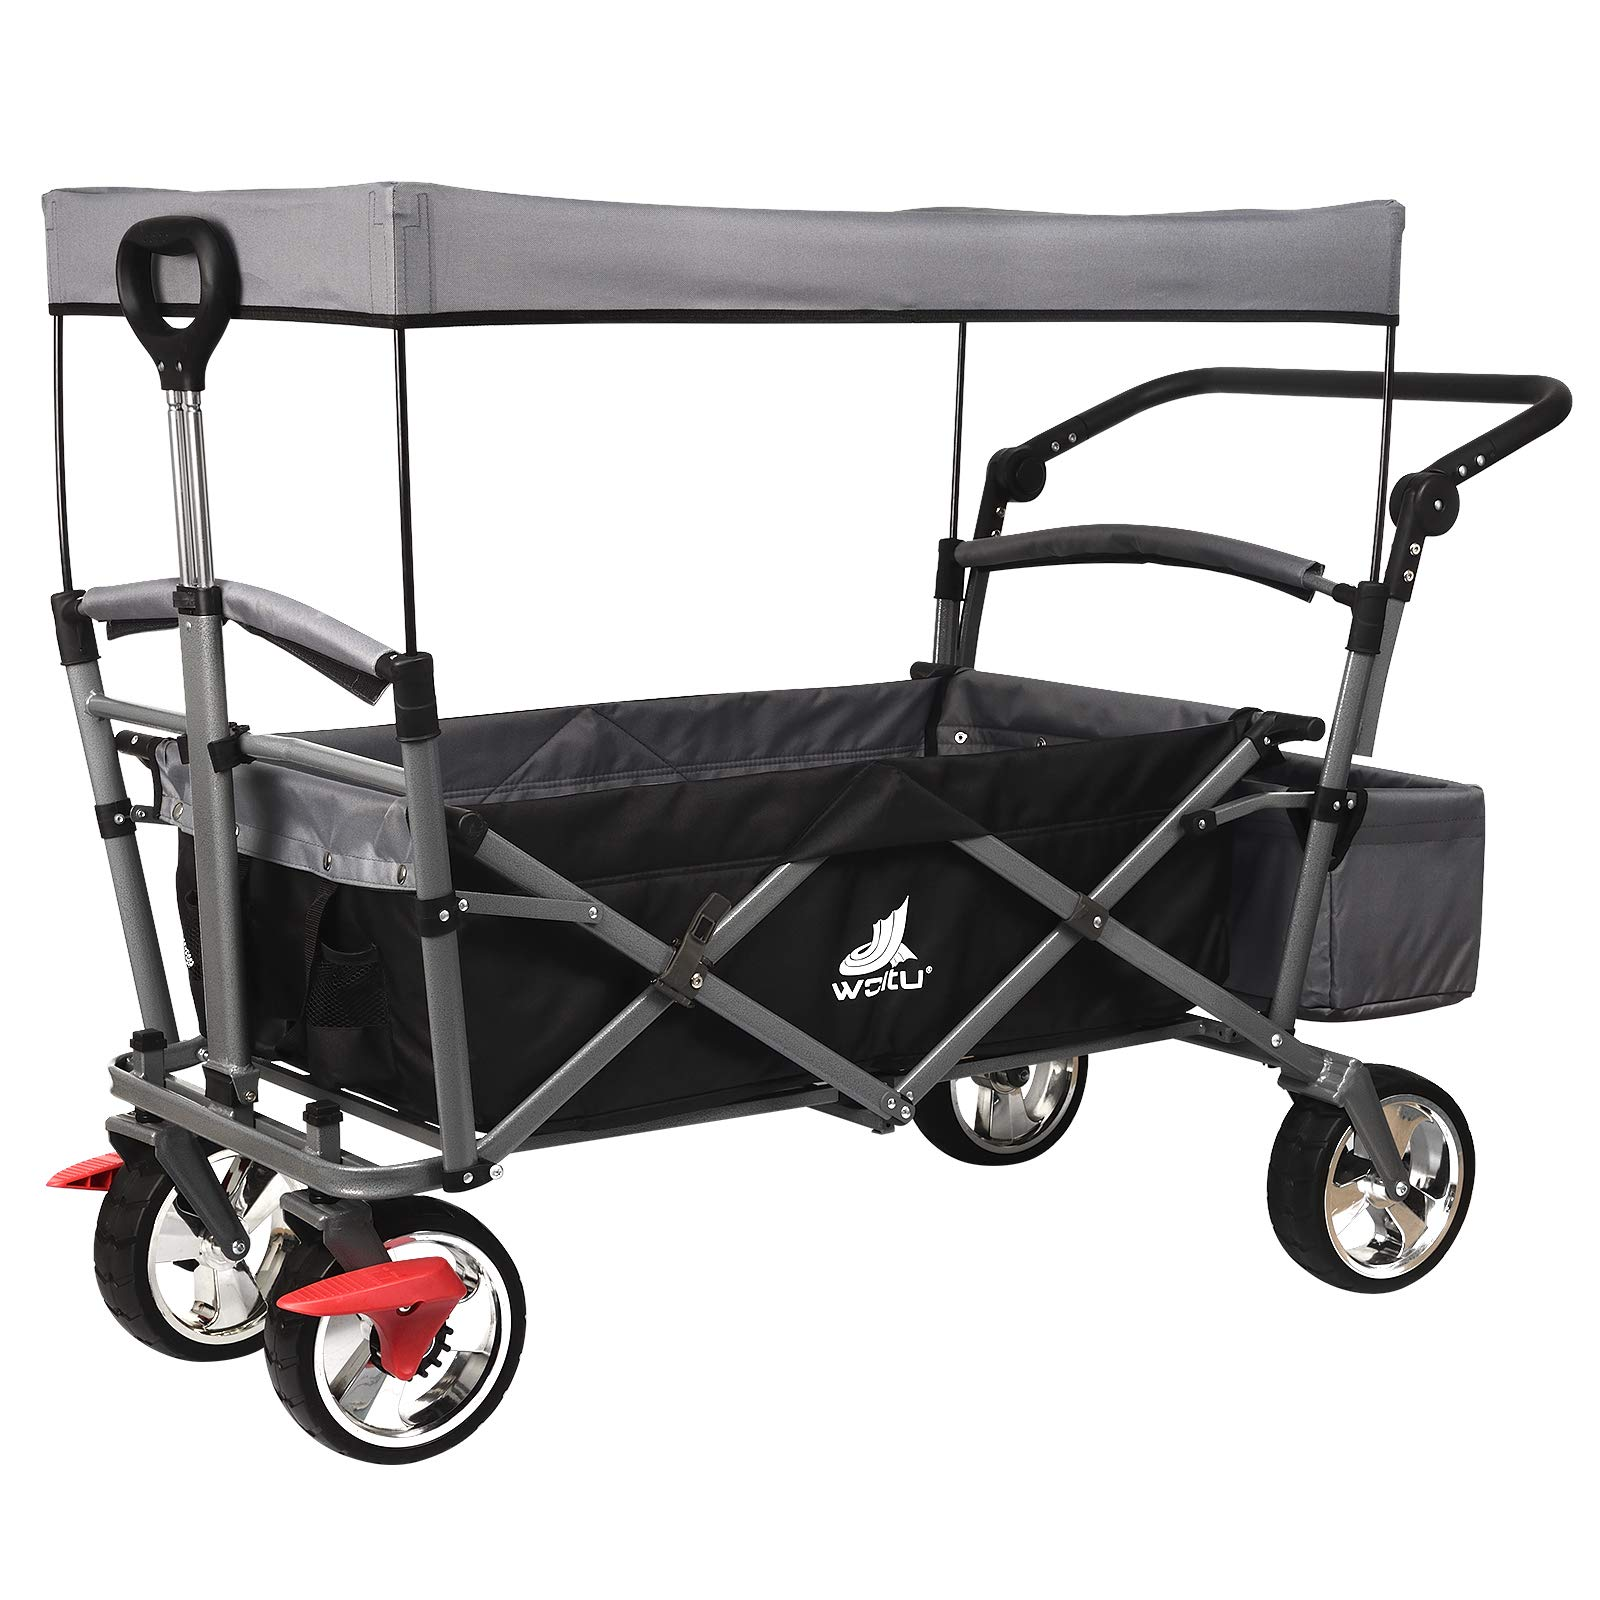 WOLTU Garden Cart with Roof, 4 Wheels with Brake, Folding Pull Wagon Handcart Trolley, Collapsible Portable Festival Camping Garden Transport Cart, Anthracite, TW004ang